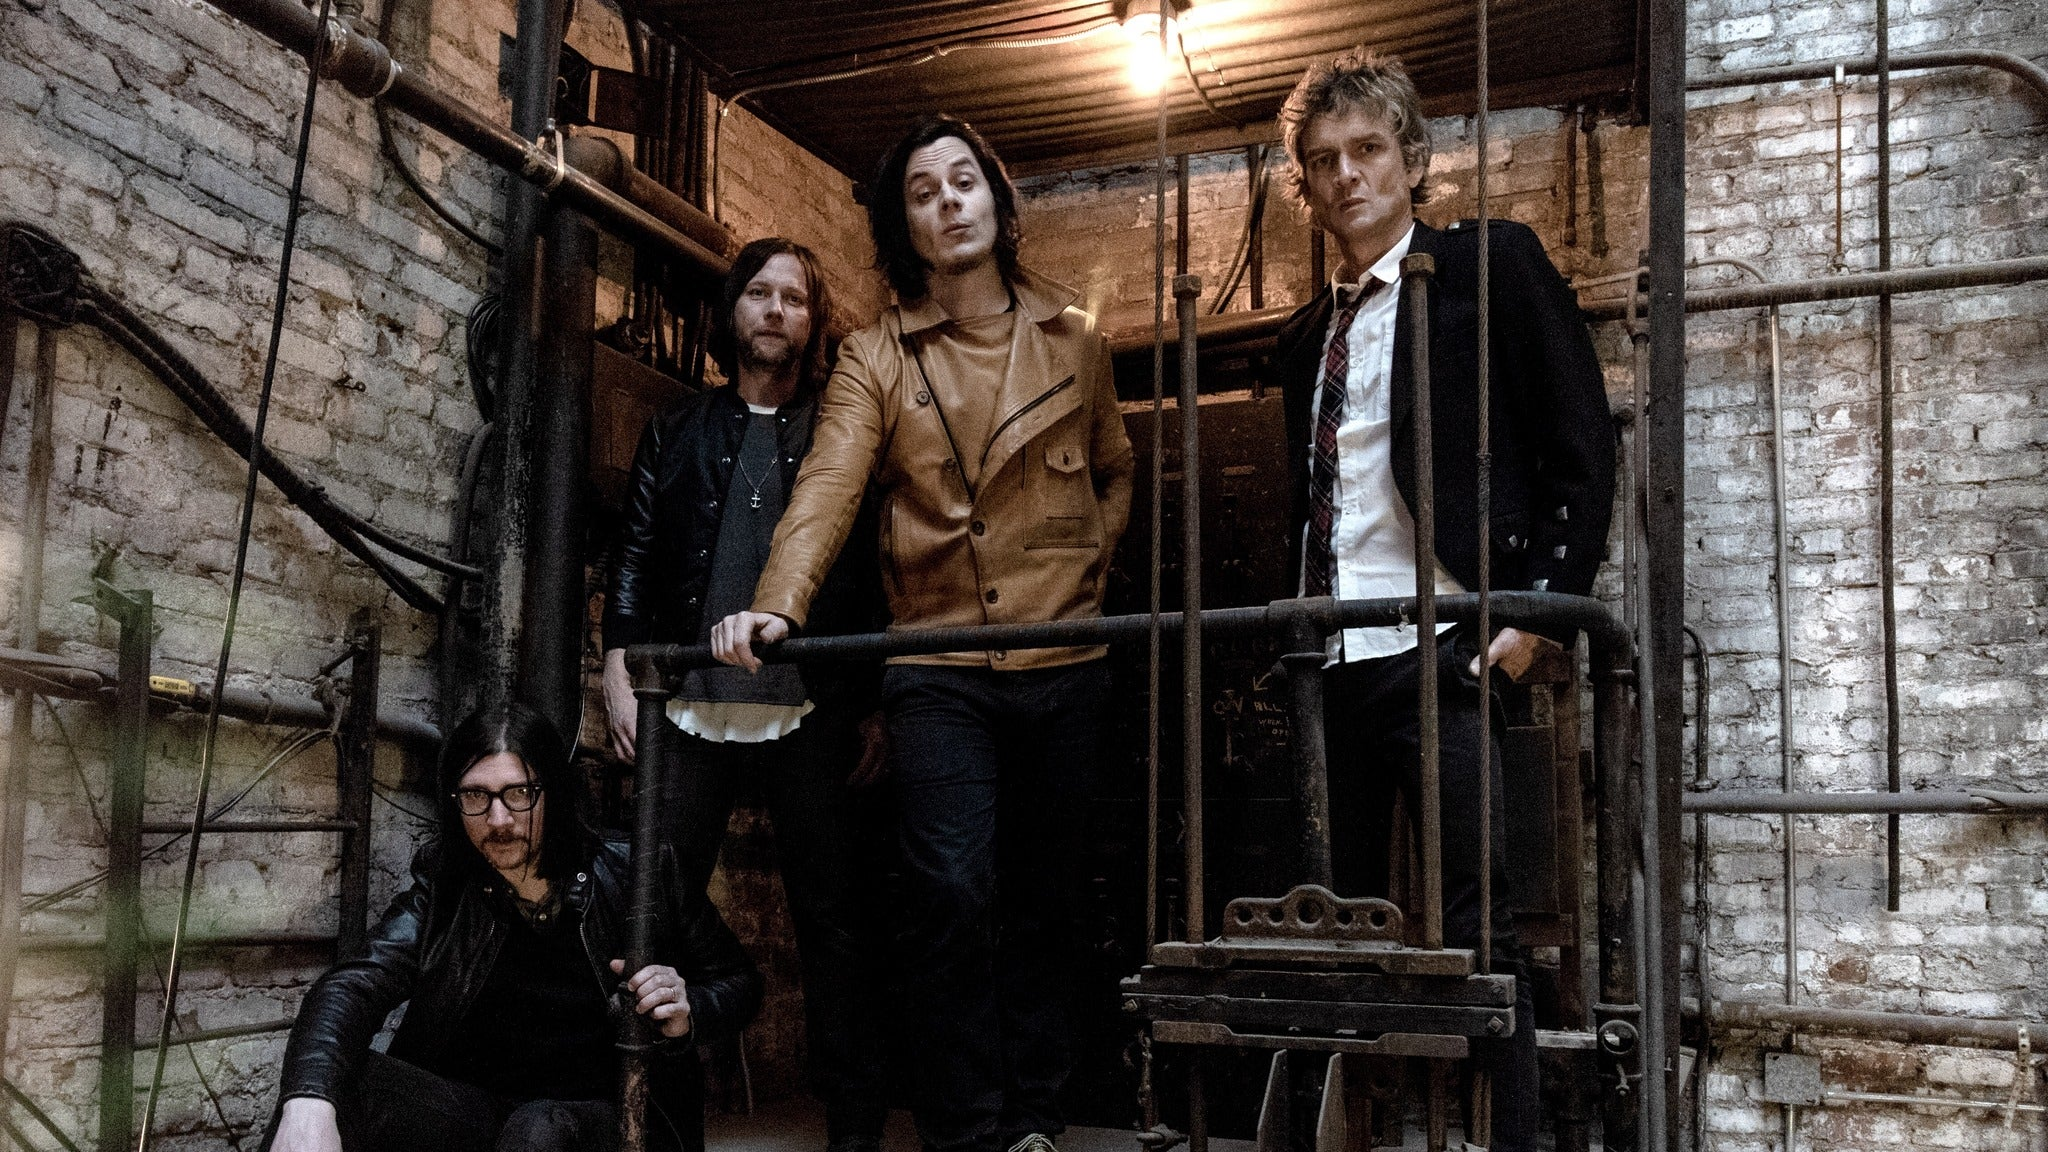 The Raconteurs at The Criterion - Oklahoma City, OK 73104